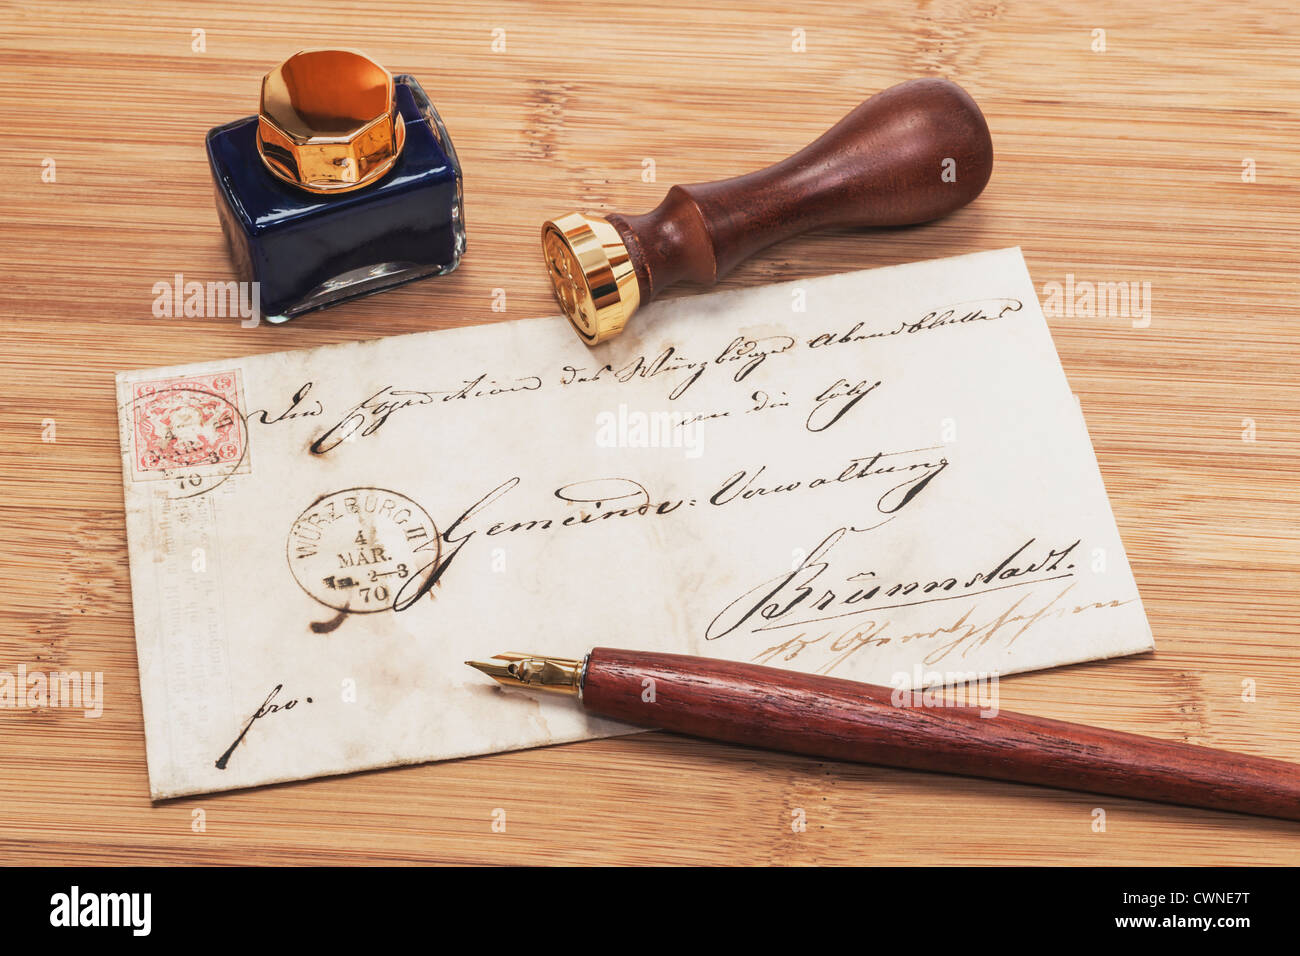 Detail photo of a old German Letter from the year 1870, a pen an ink pot and a Seal are on it - Stock Image